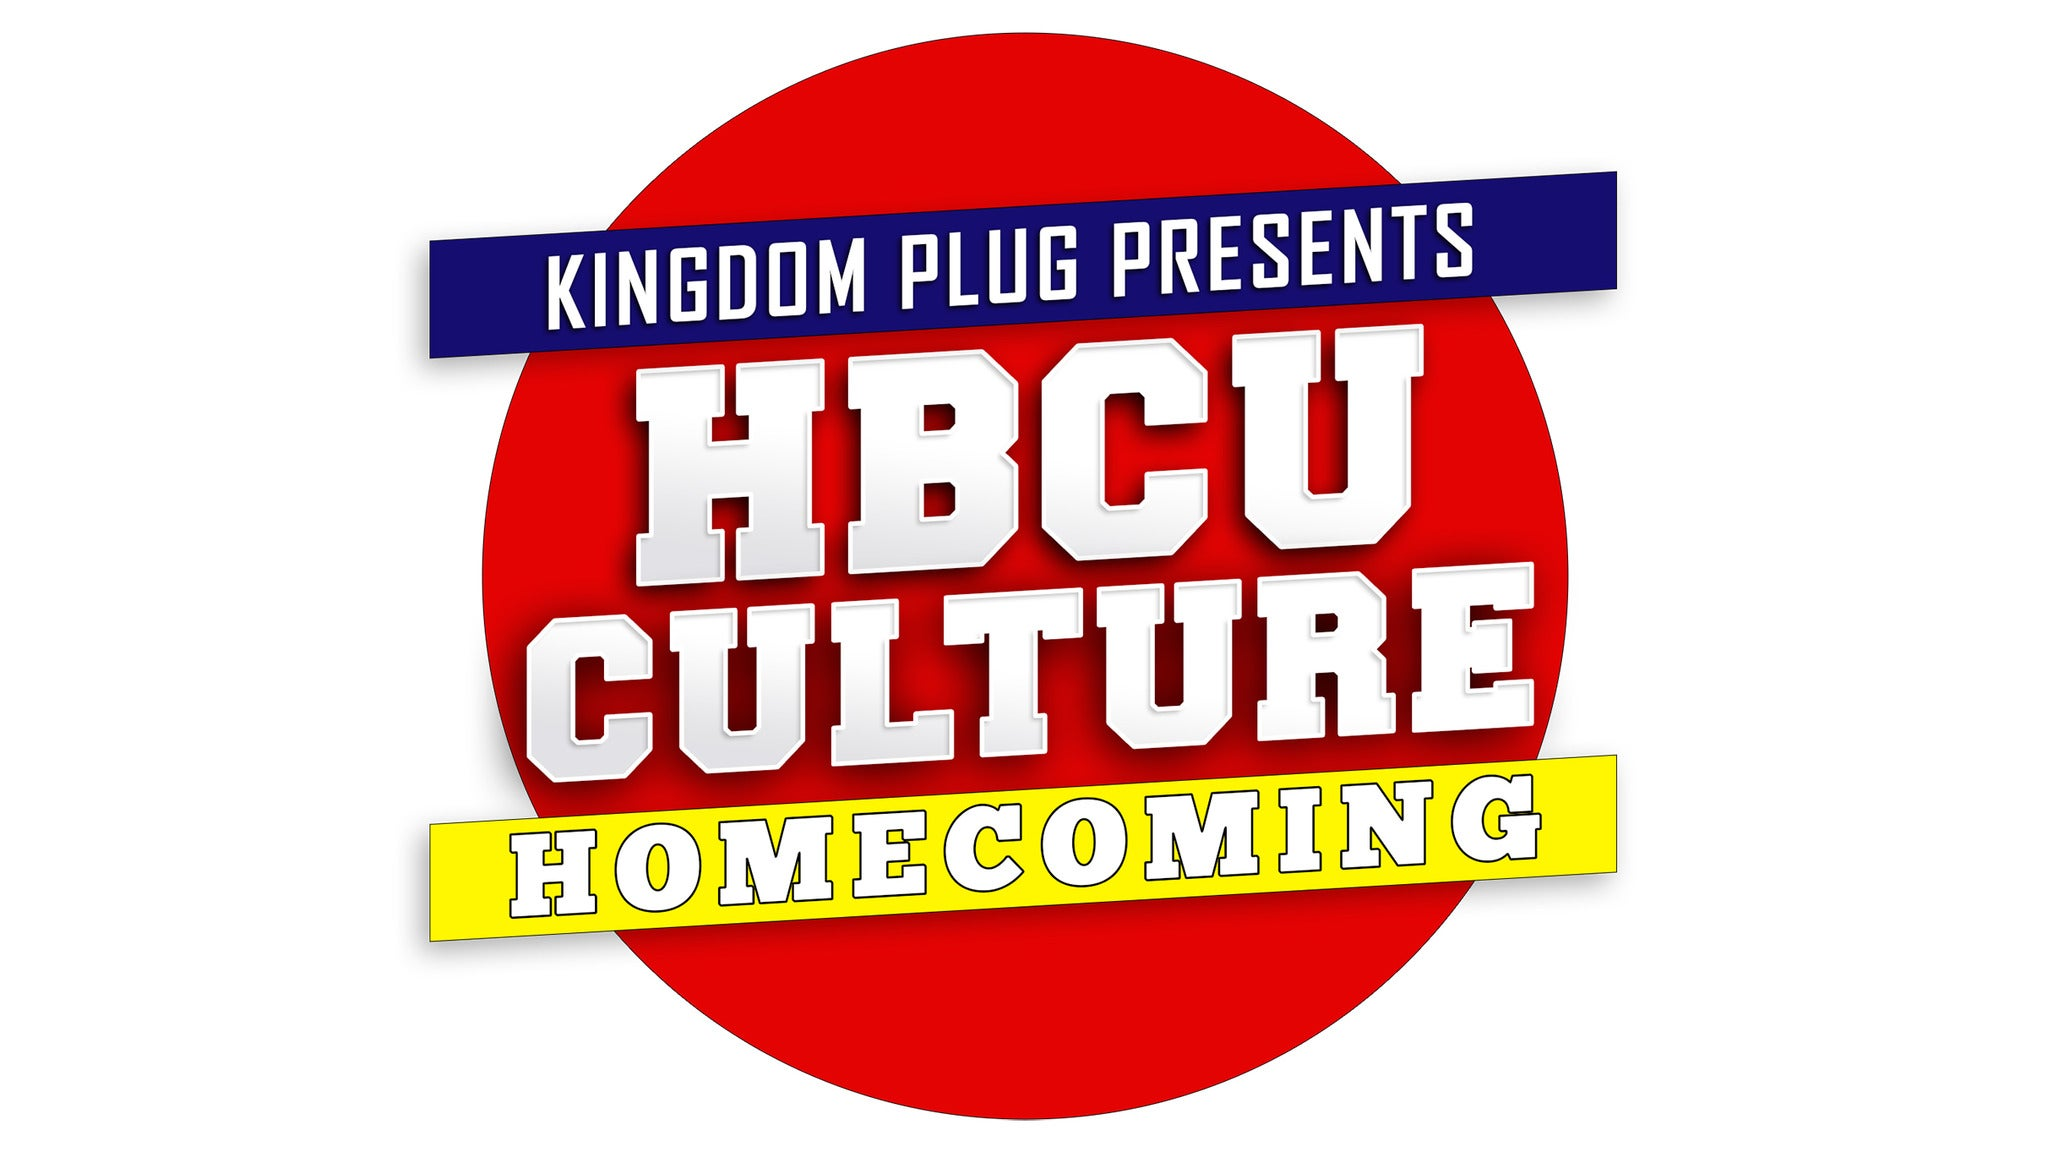 HBCU Homecoming Tickets HBCU Homecoming Concert Tickets Tour 2048x1152